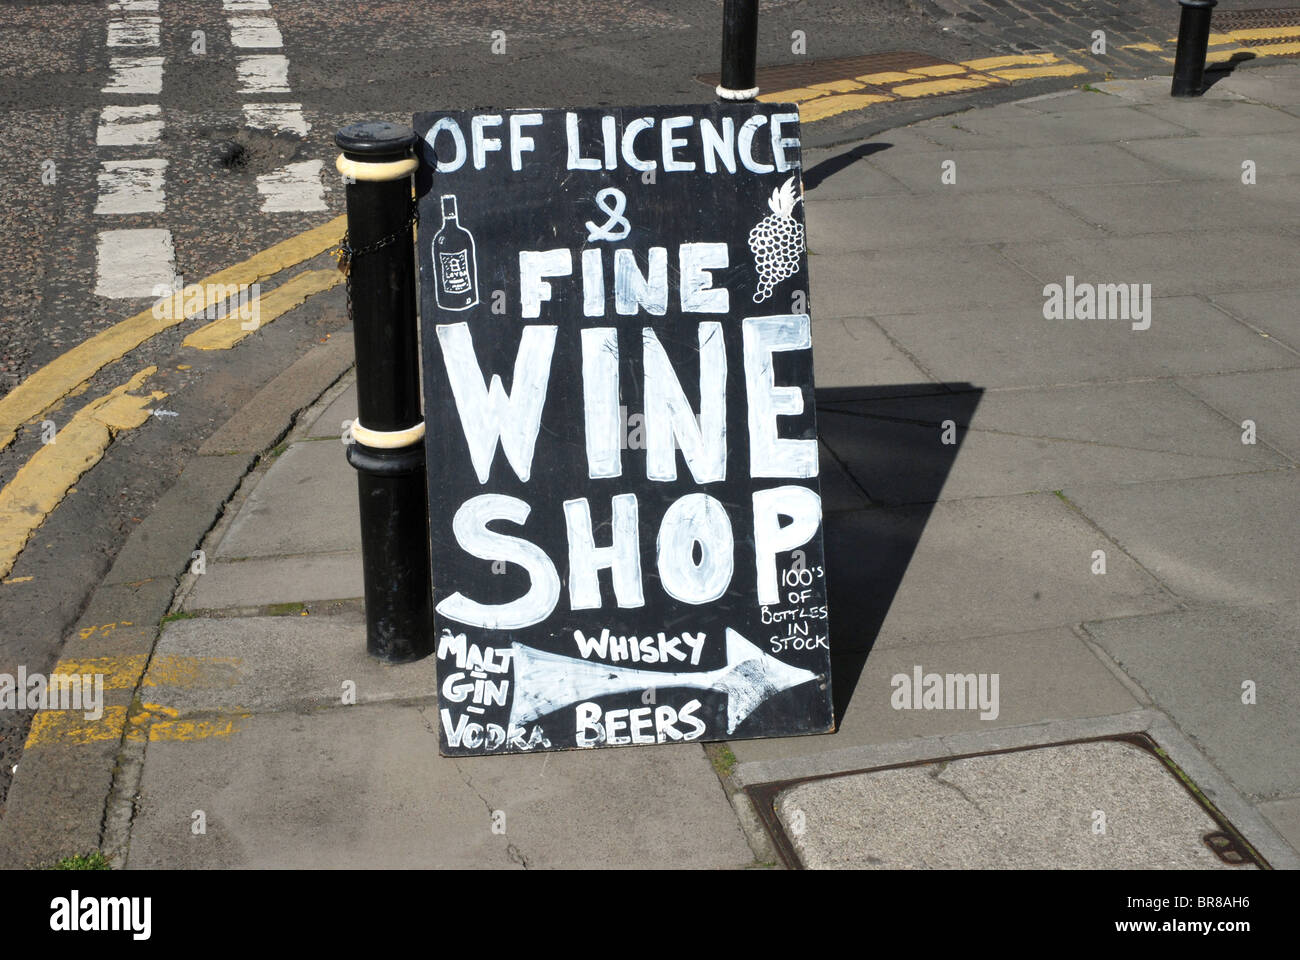 A sign pointing to an off licence in Edinburgh's New Town. - Stock Image